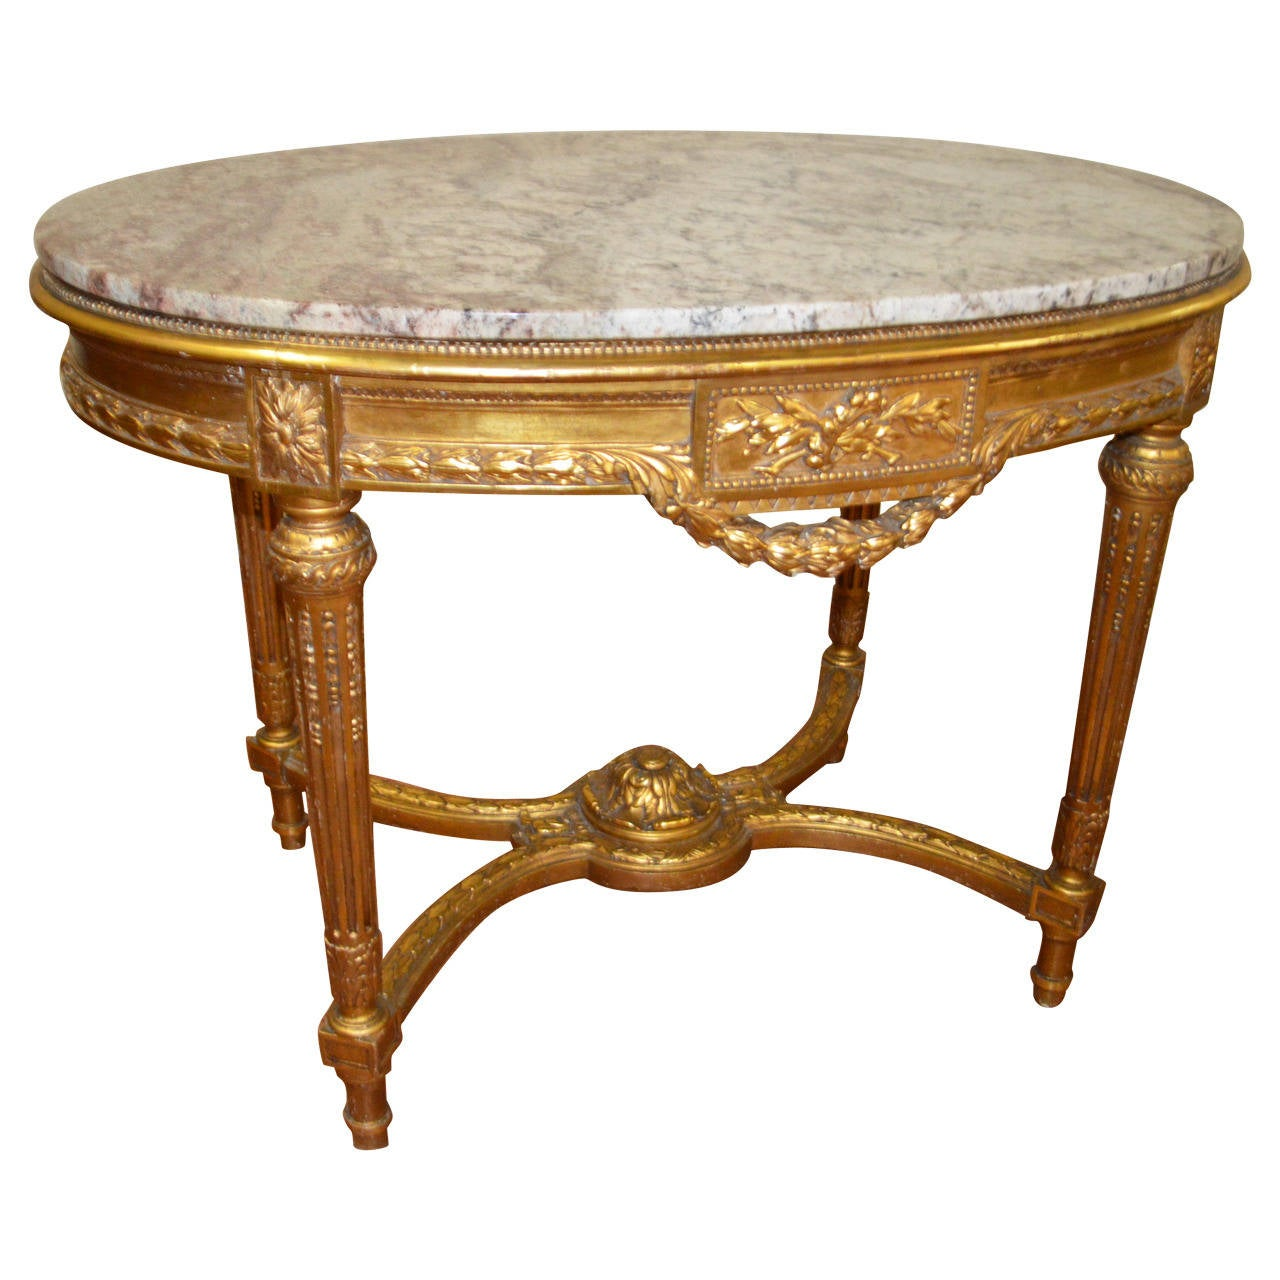 louis xvi style gilded hall or center table at 1stdibs. Black Bedroom Furniture Sets. Home Design Ideas